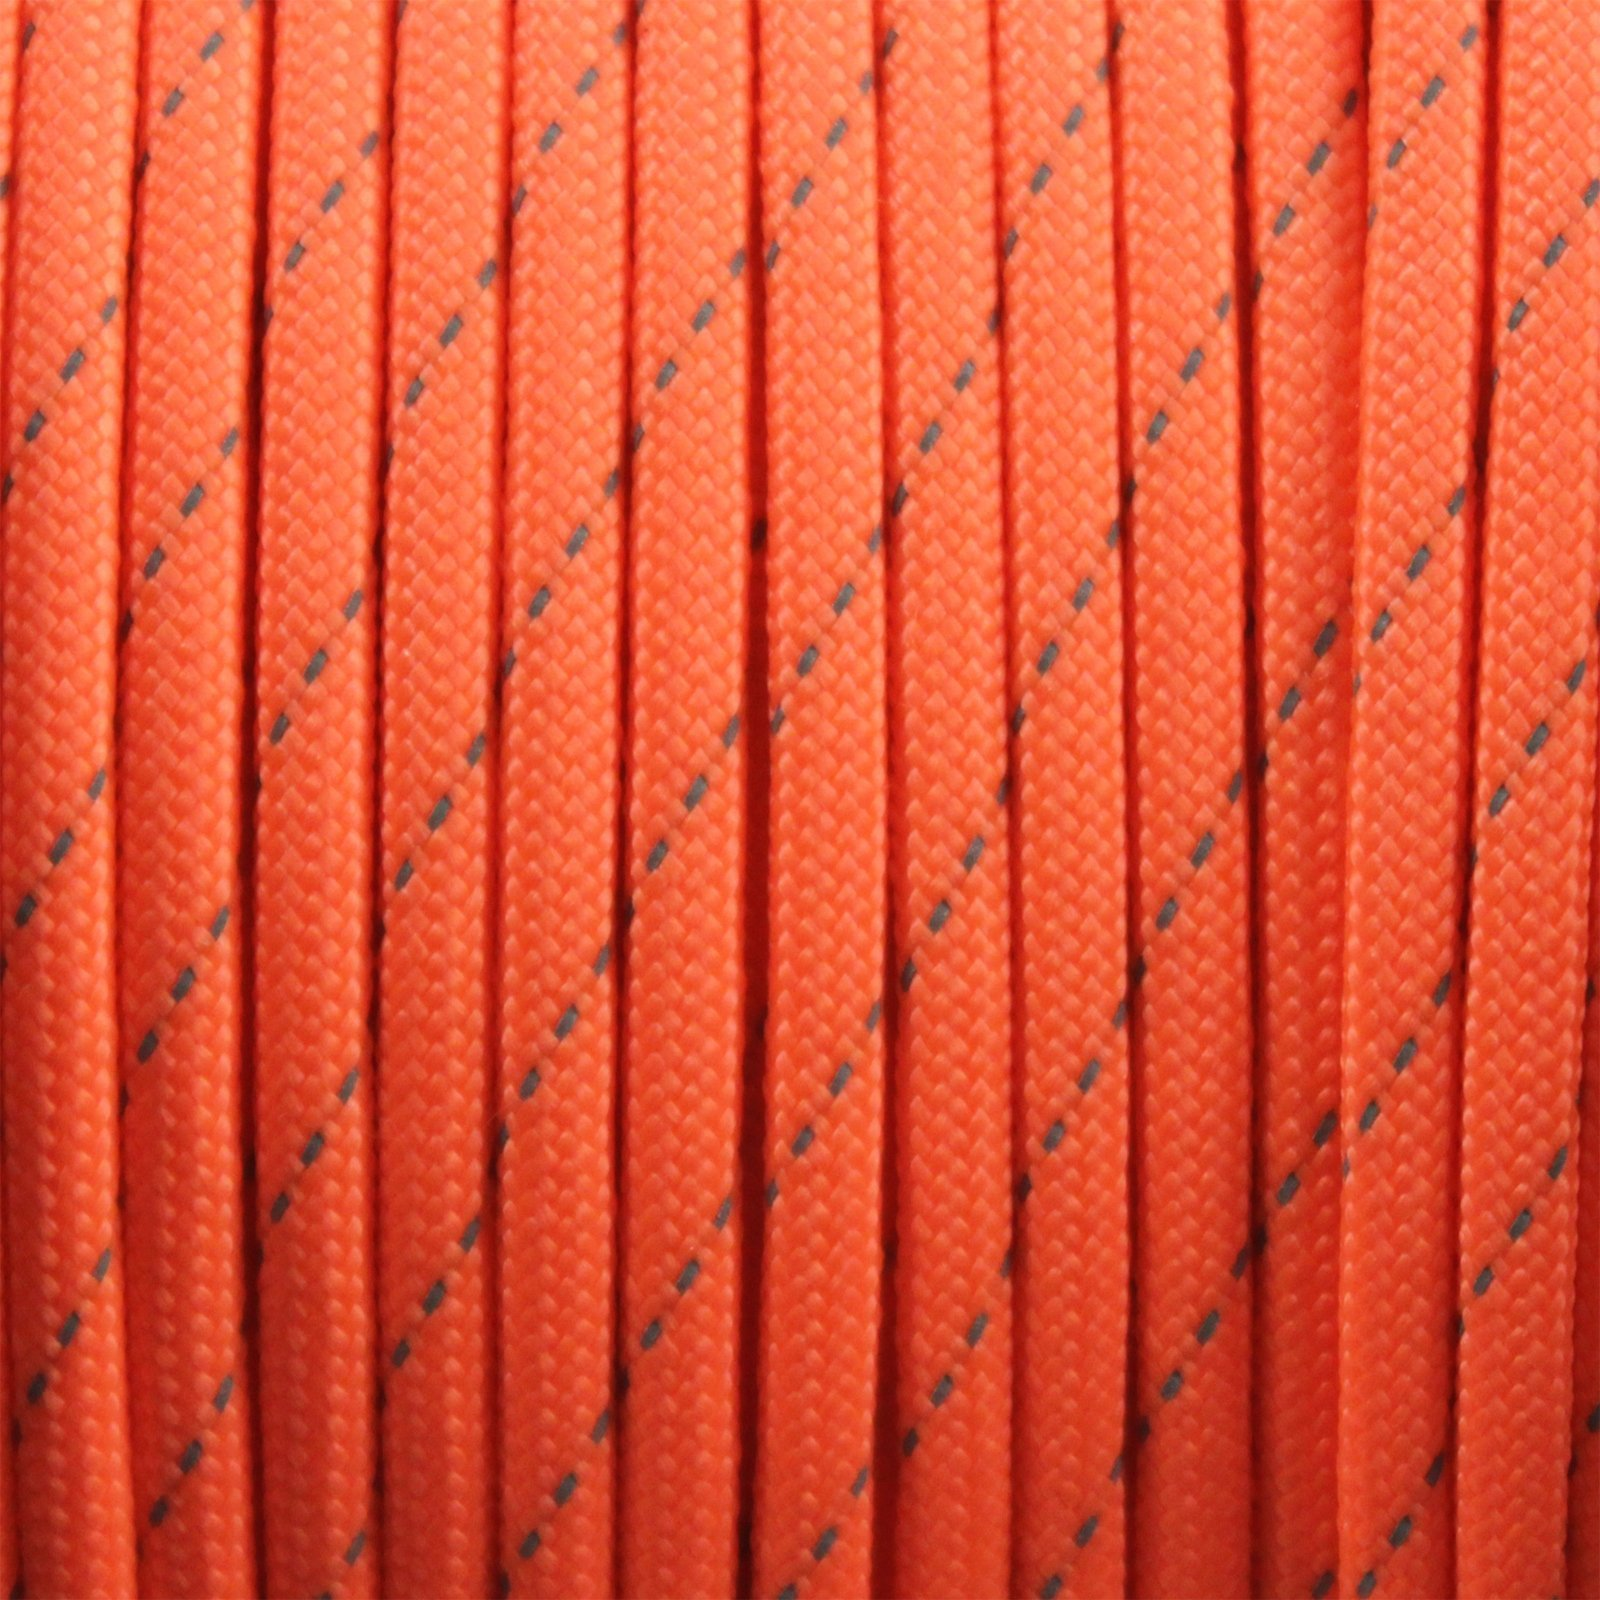 550lbs Strength Survival Paracord Rope Camping Hiking Reflective Orange- 50ft